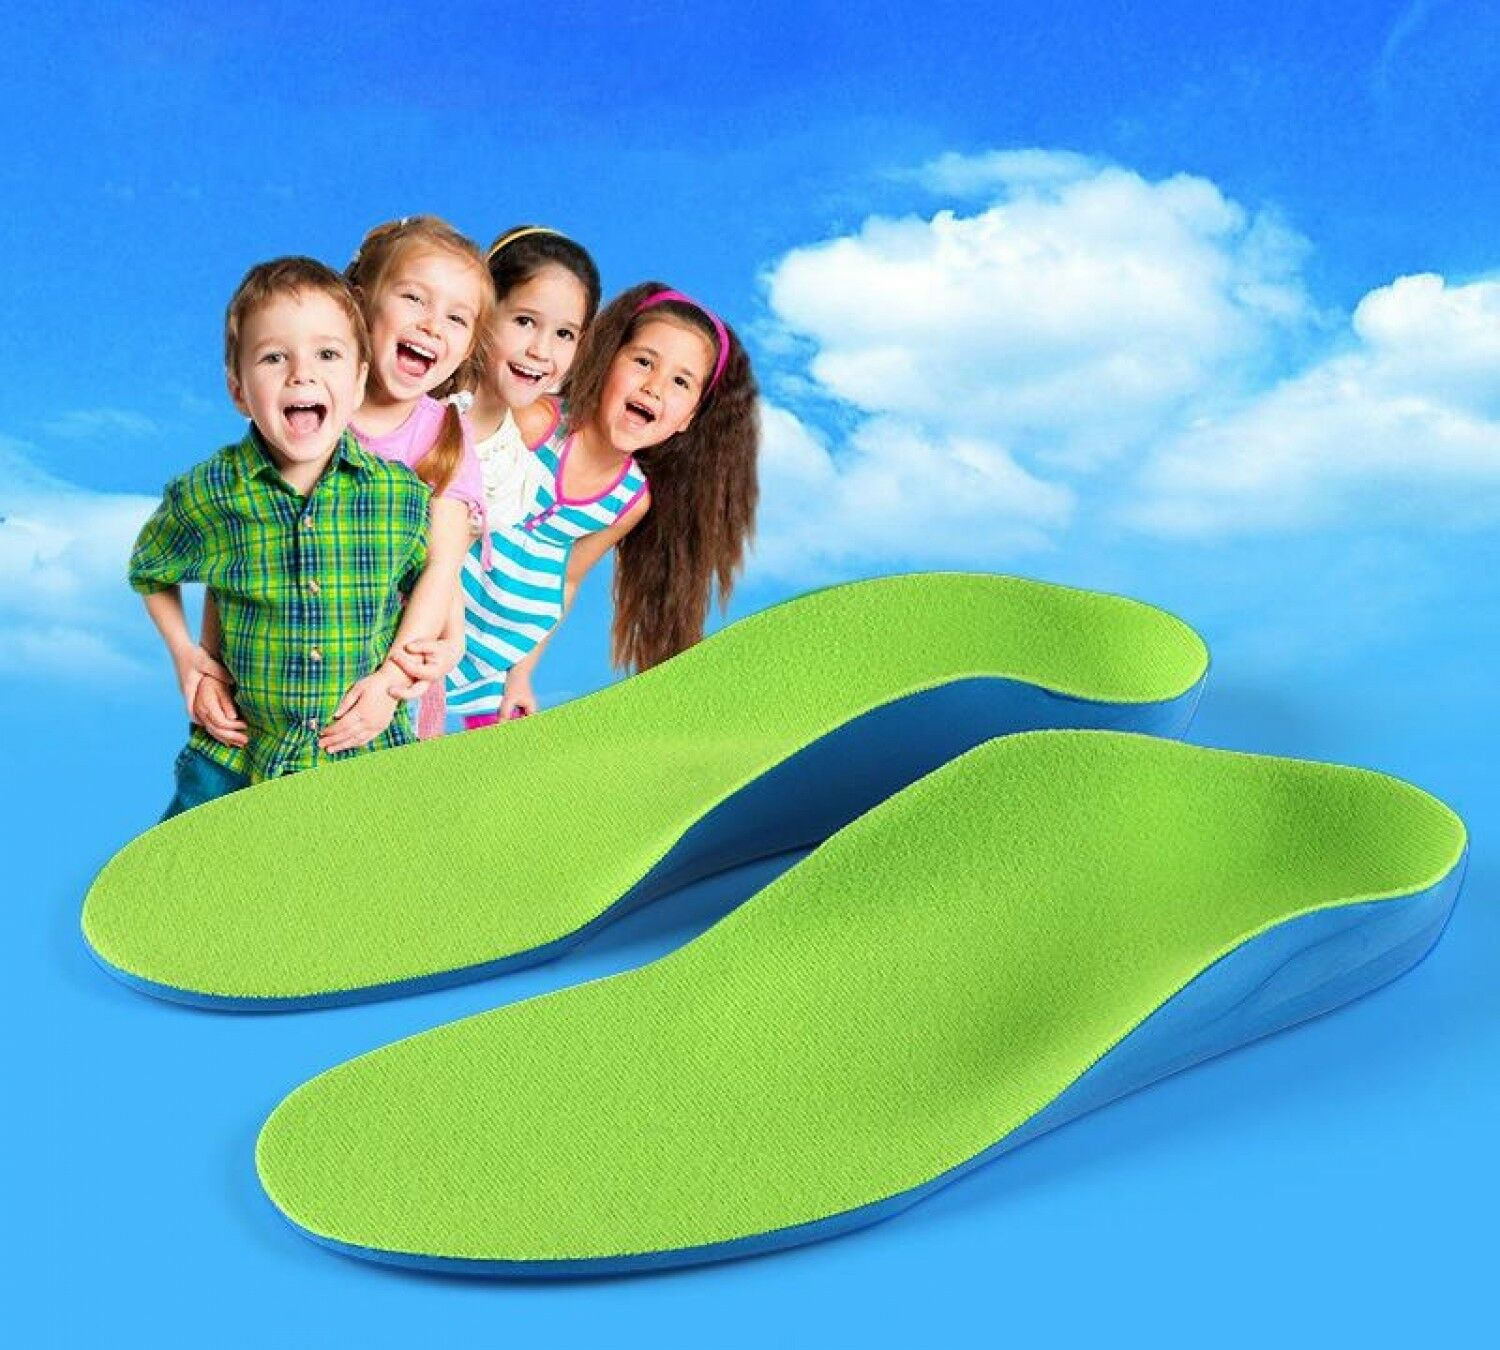 EVA Arch Support Insoles Orthotic Orthopedic Shoe Inserts For Kids Children A-L